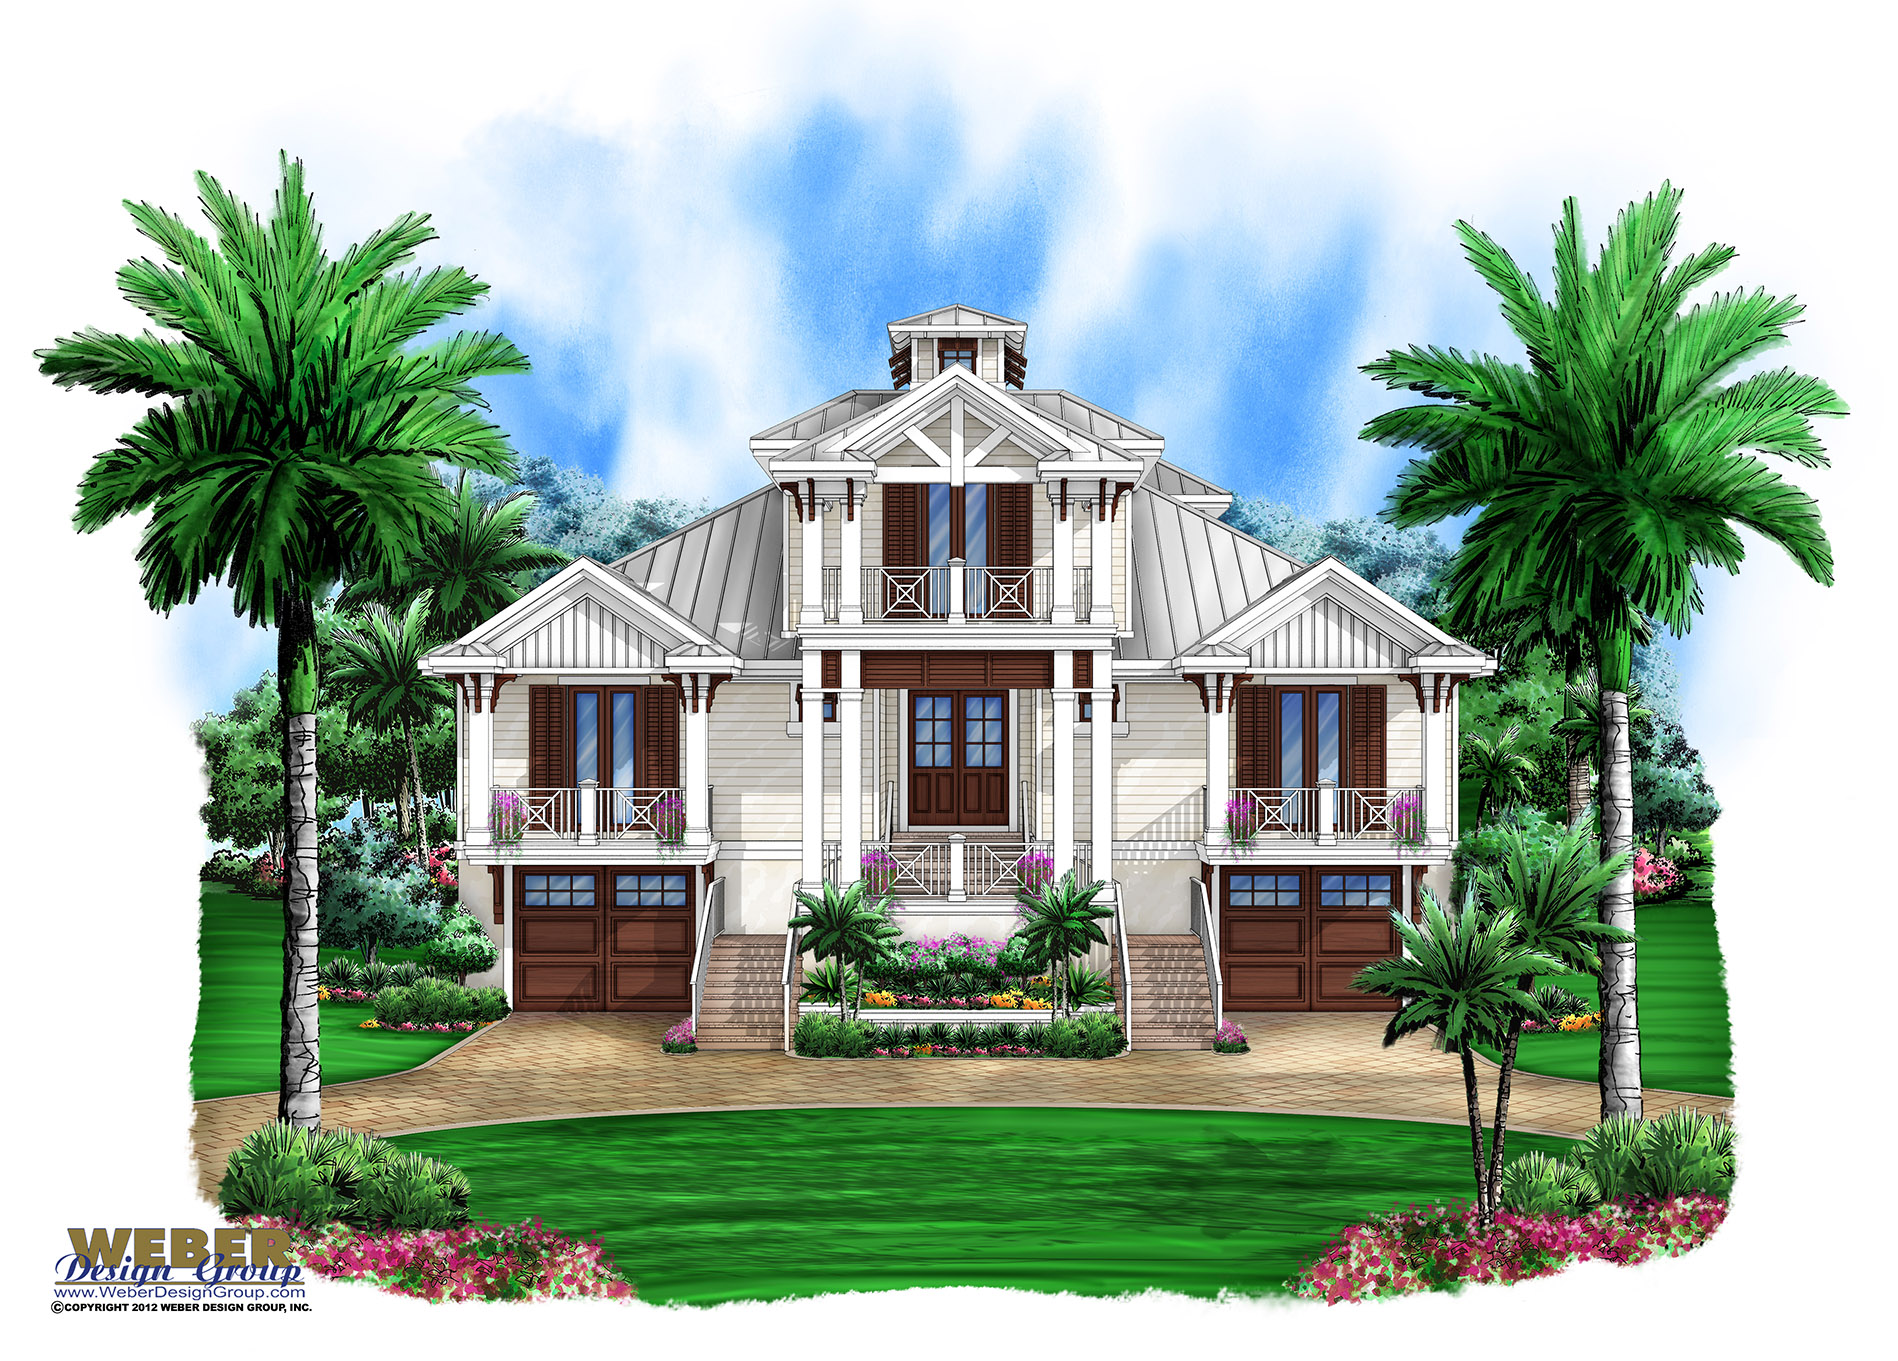 Marsh harbour olde florida house plan weber design group for Florida house designs